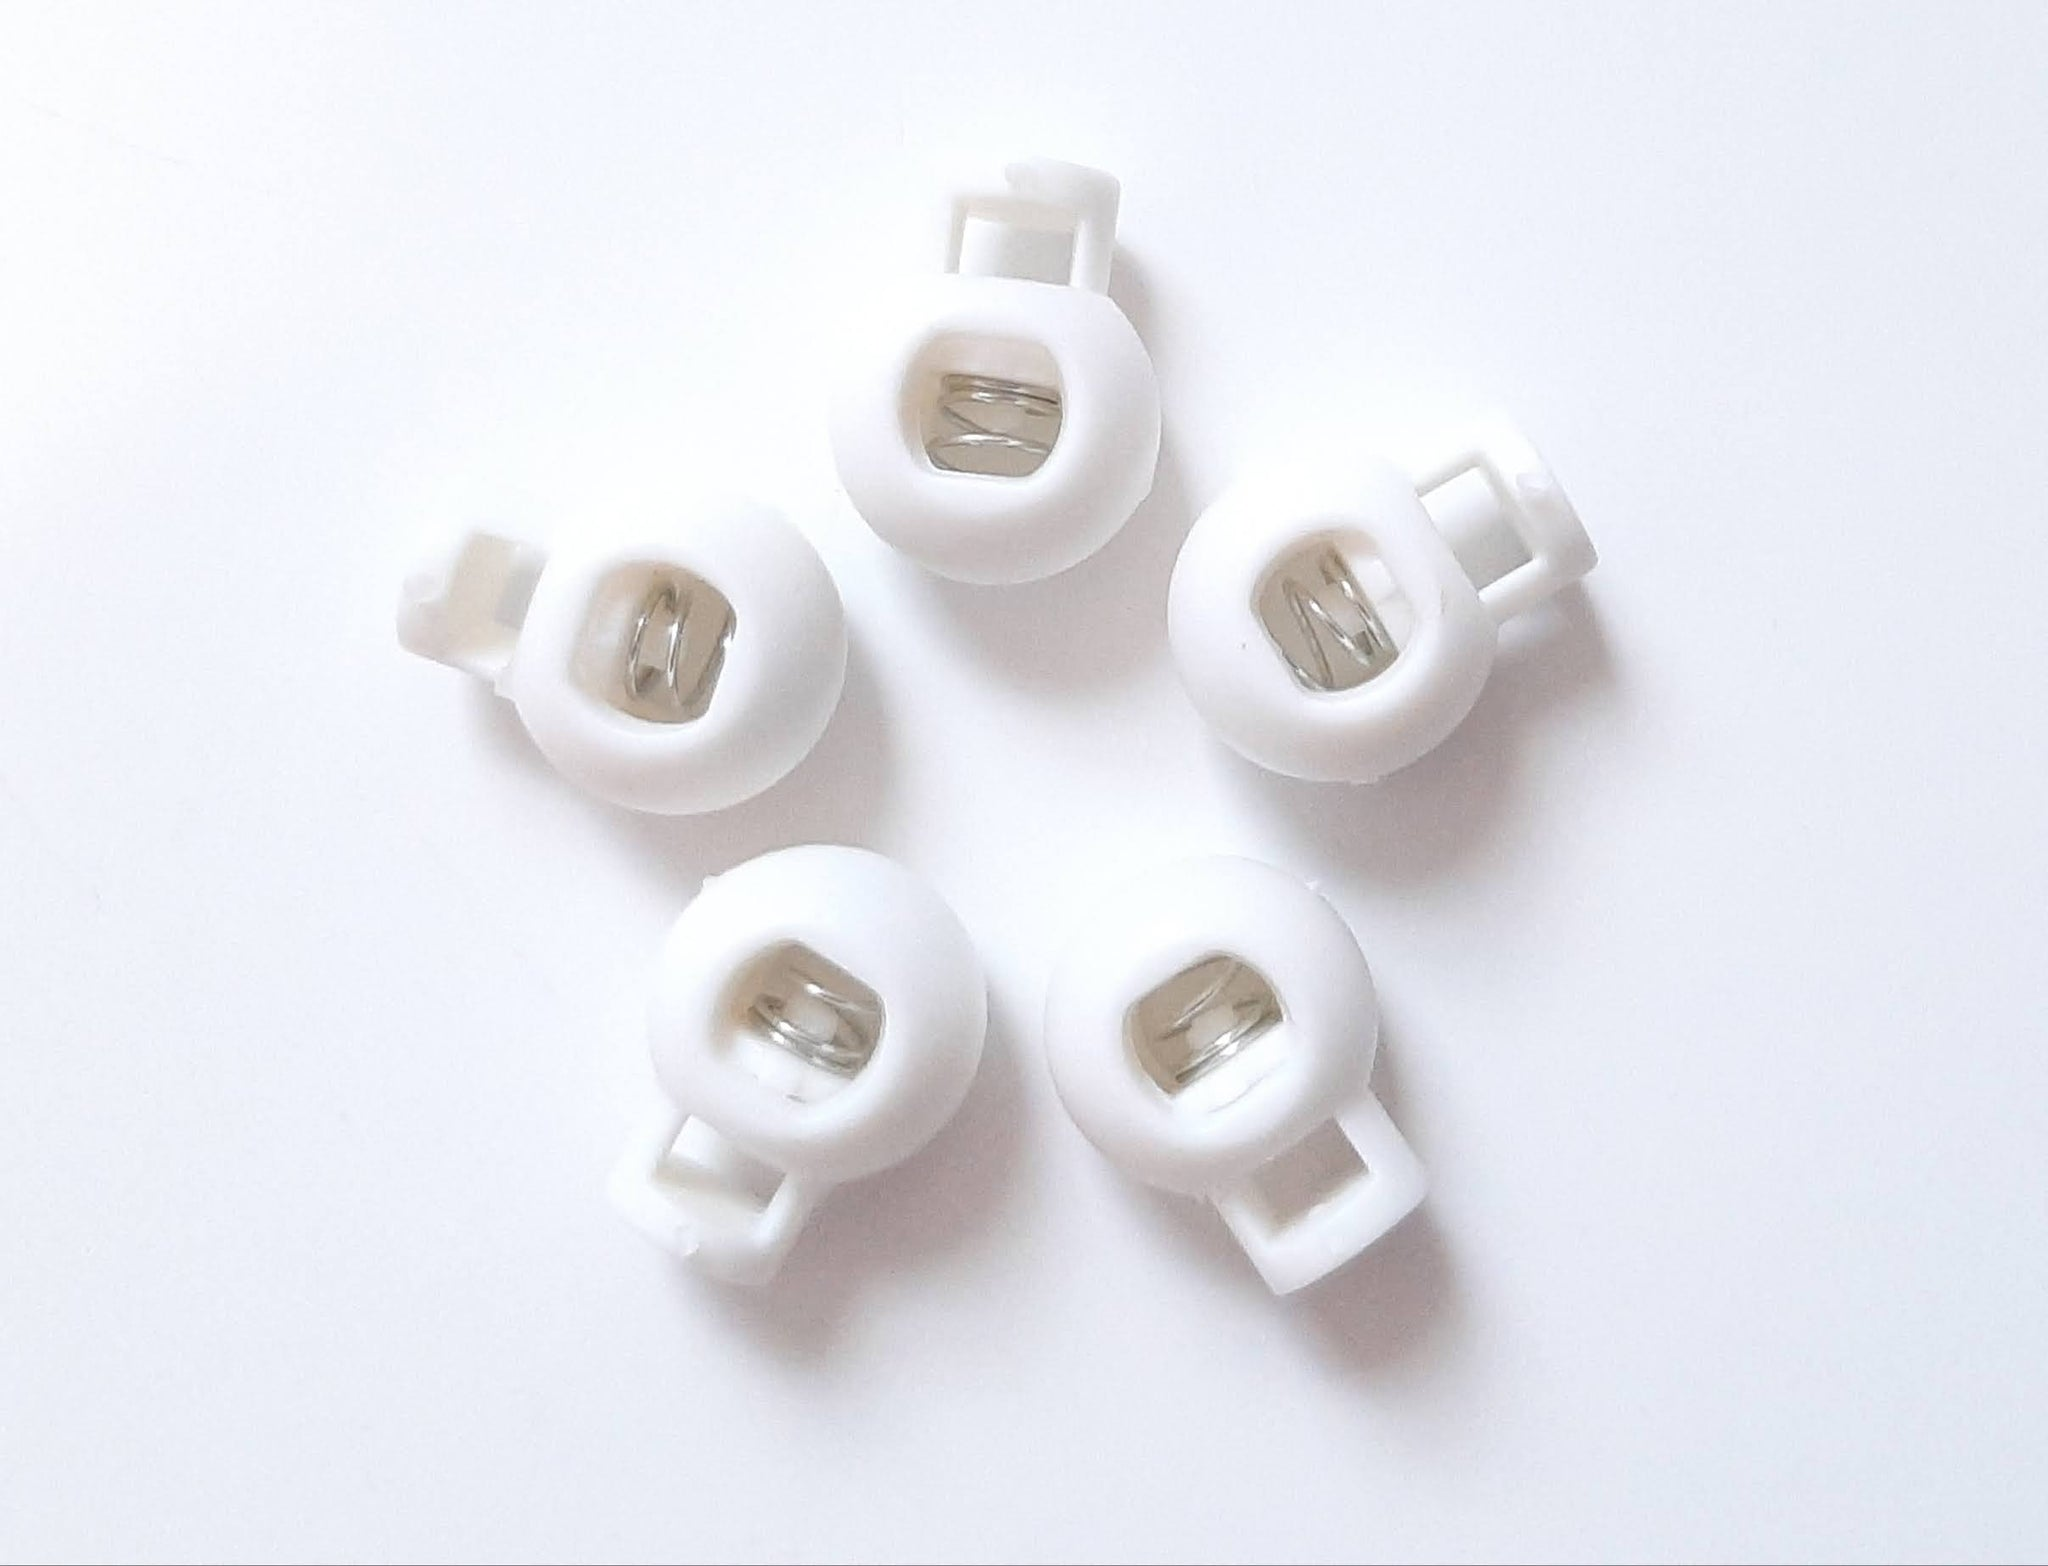 5pc White Nylon Spring Buckle - Sliding Buckle to Lock Yarn, Cord, or Rope in Place